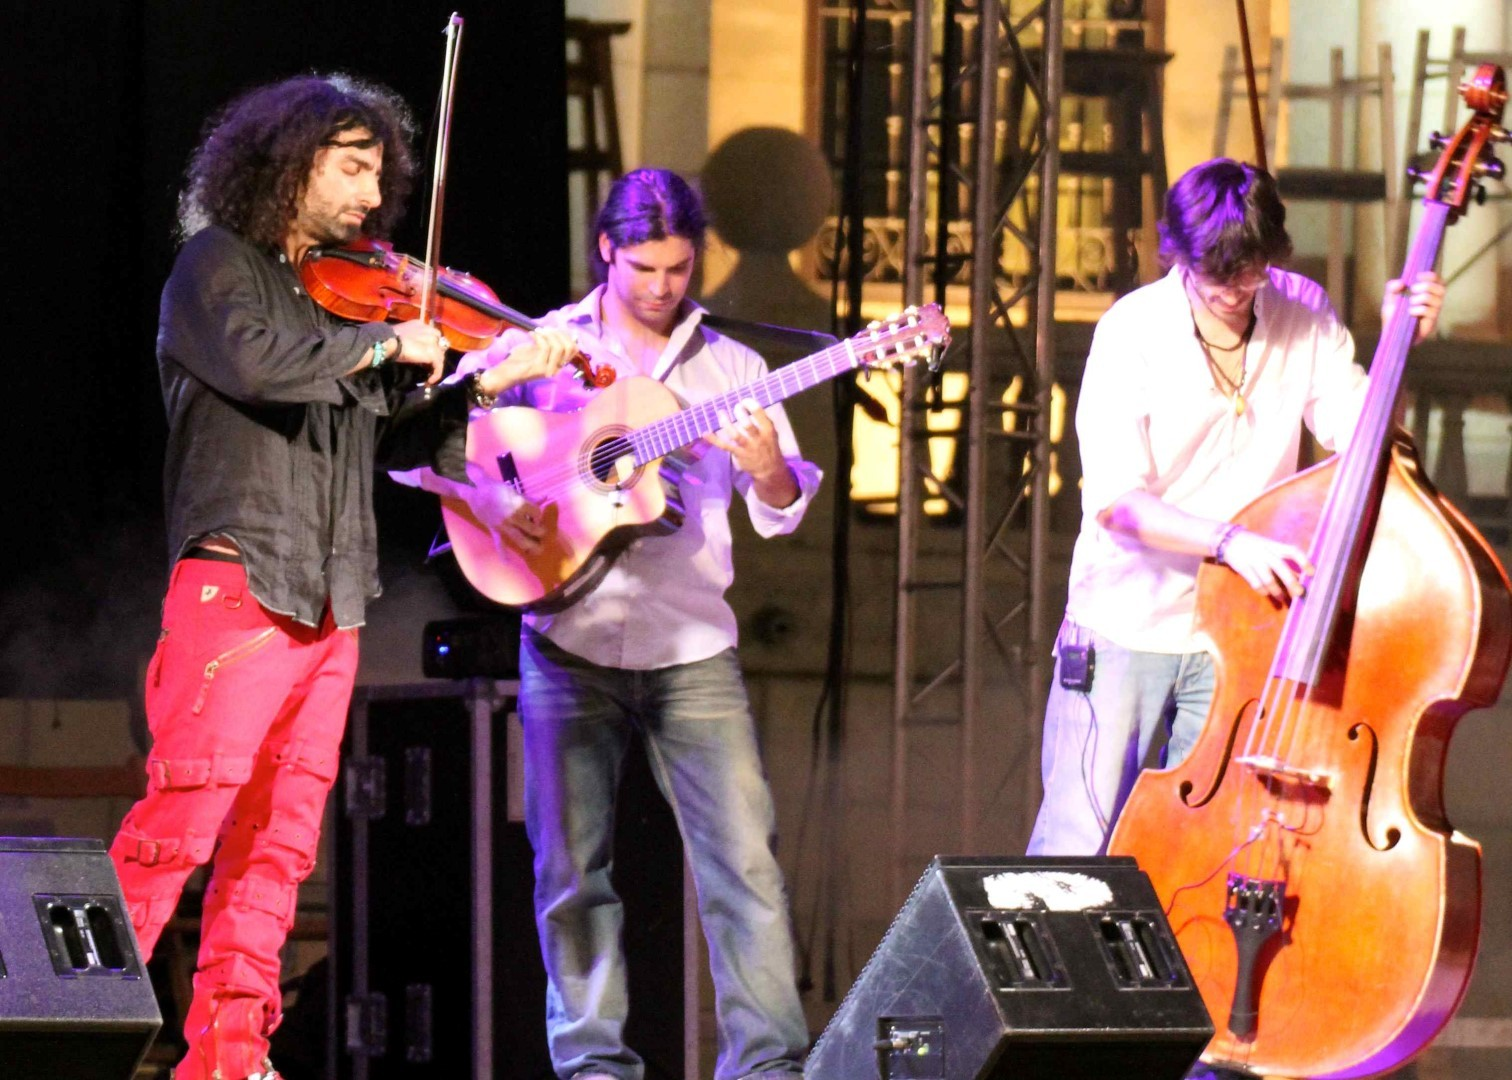 Ara Malikian, Toledo, Spain, Corpus Christi, Travelers Roundtable, Robert Bundy